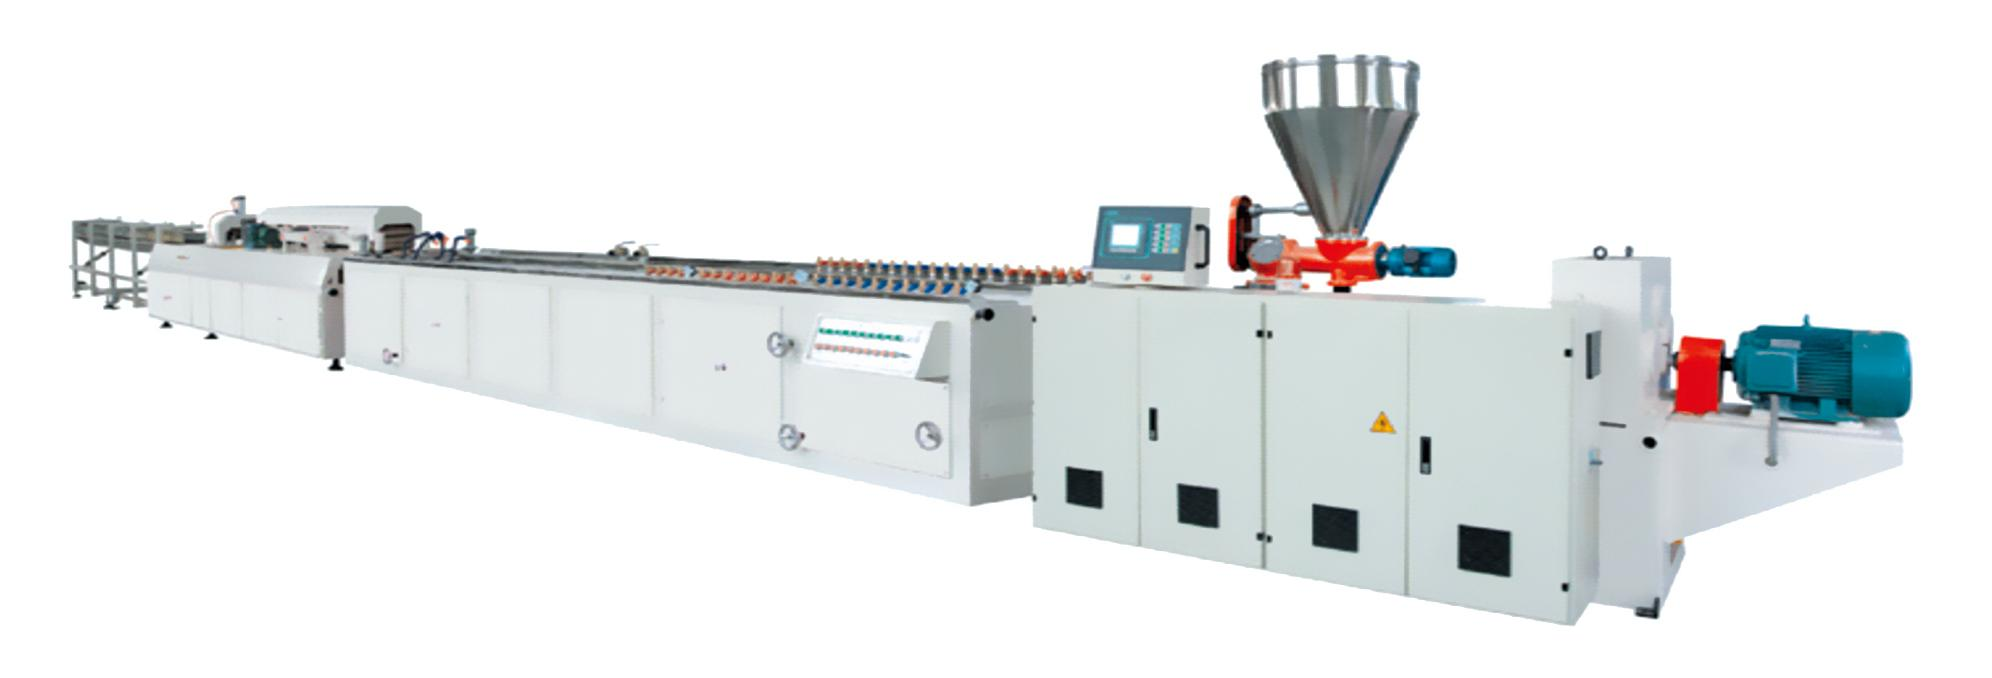 PVC frofile&foamed extrusion line